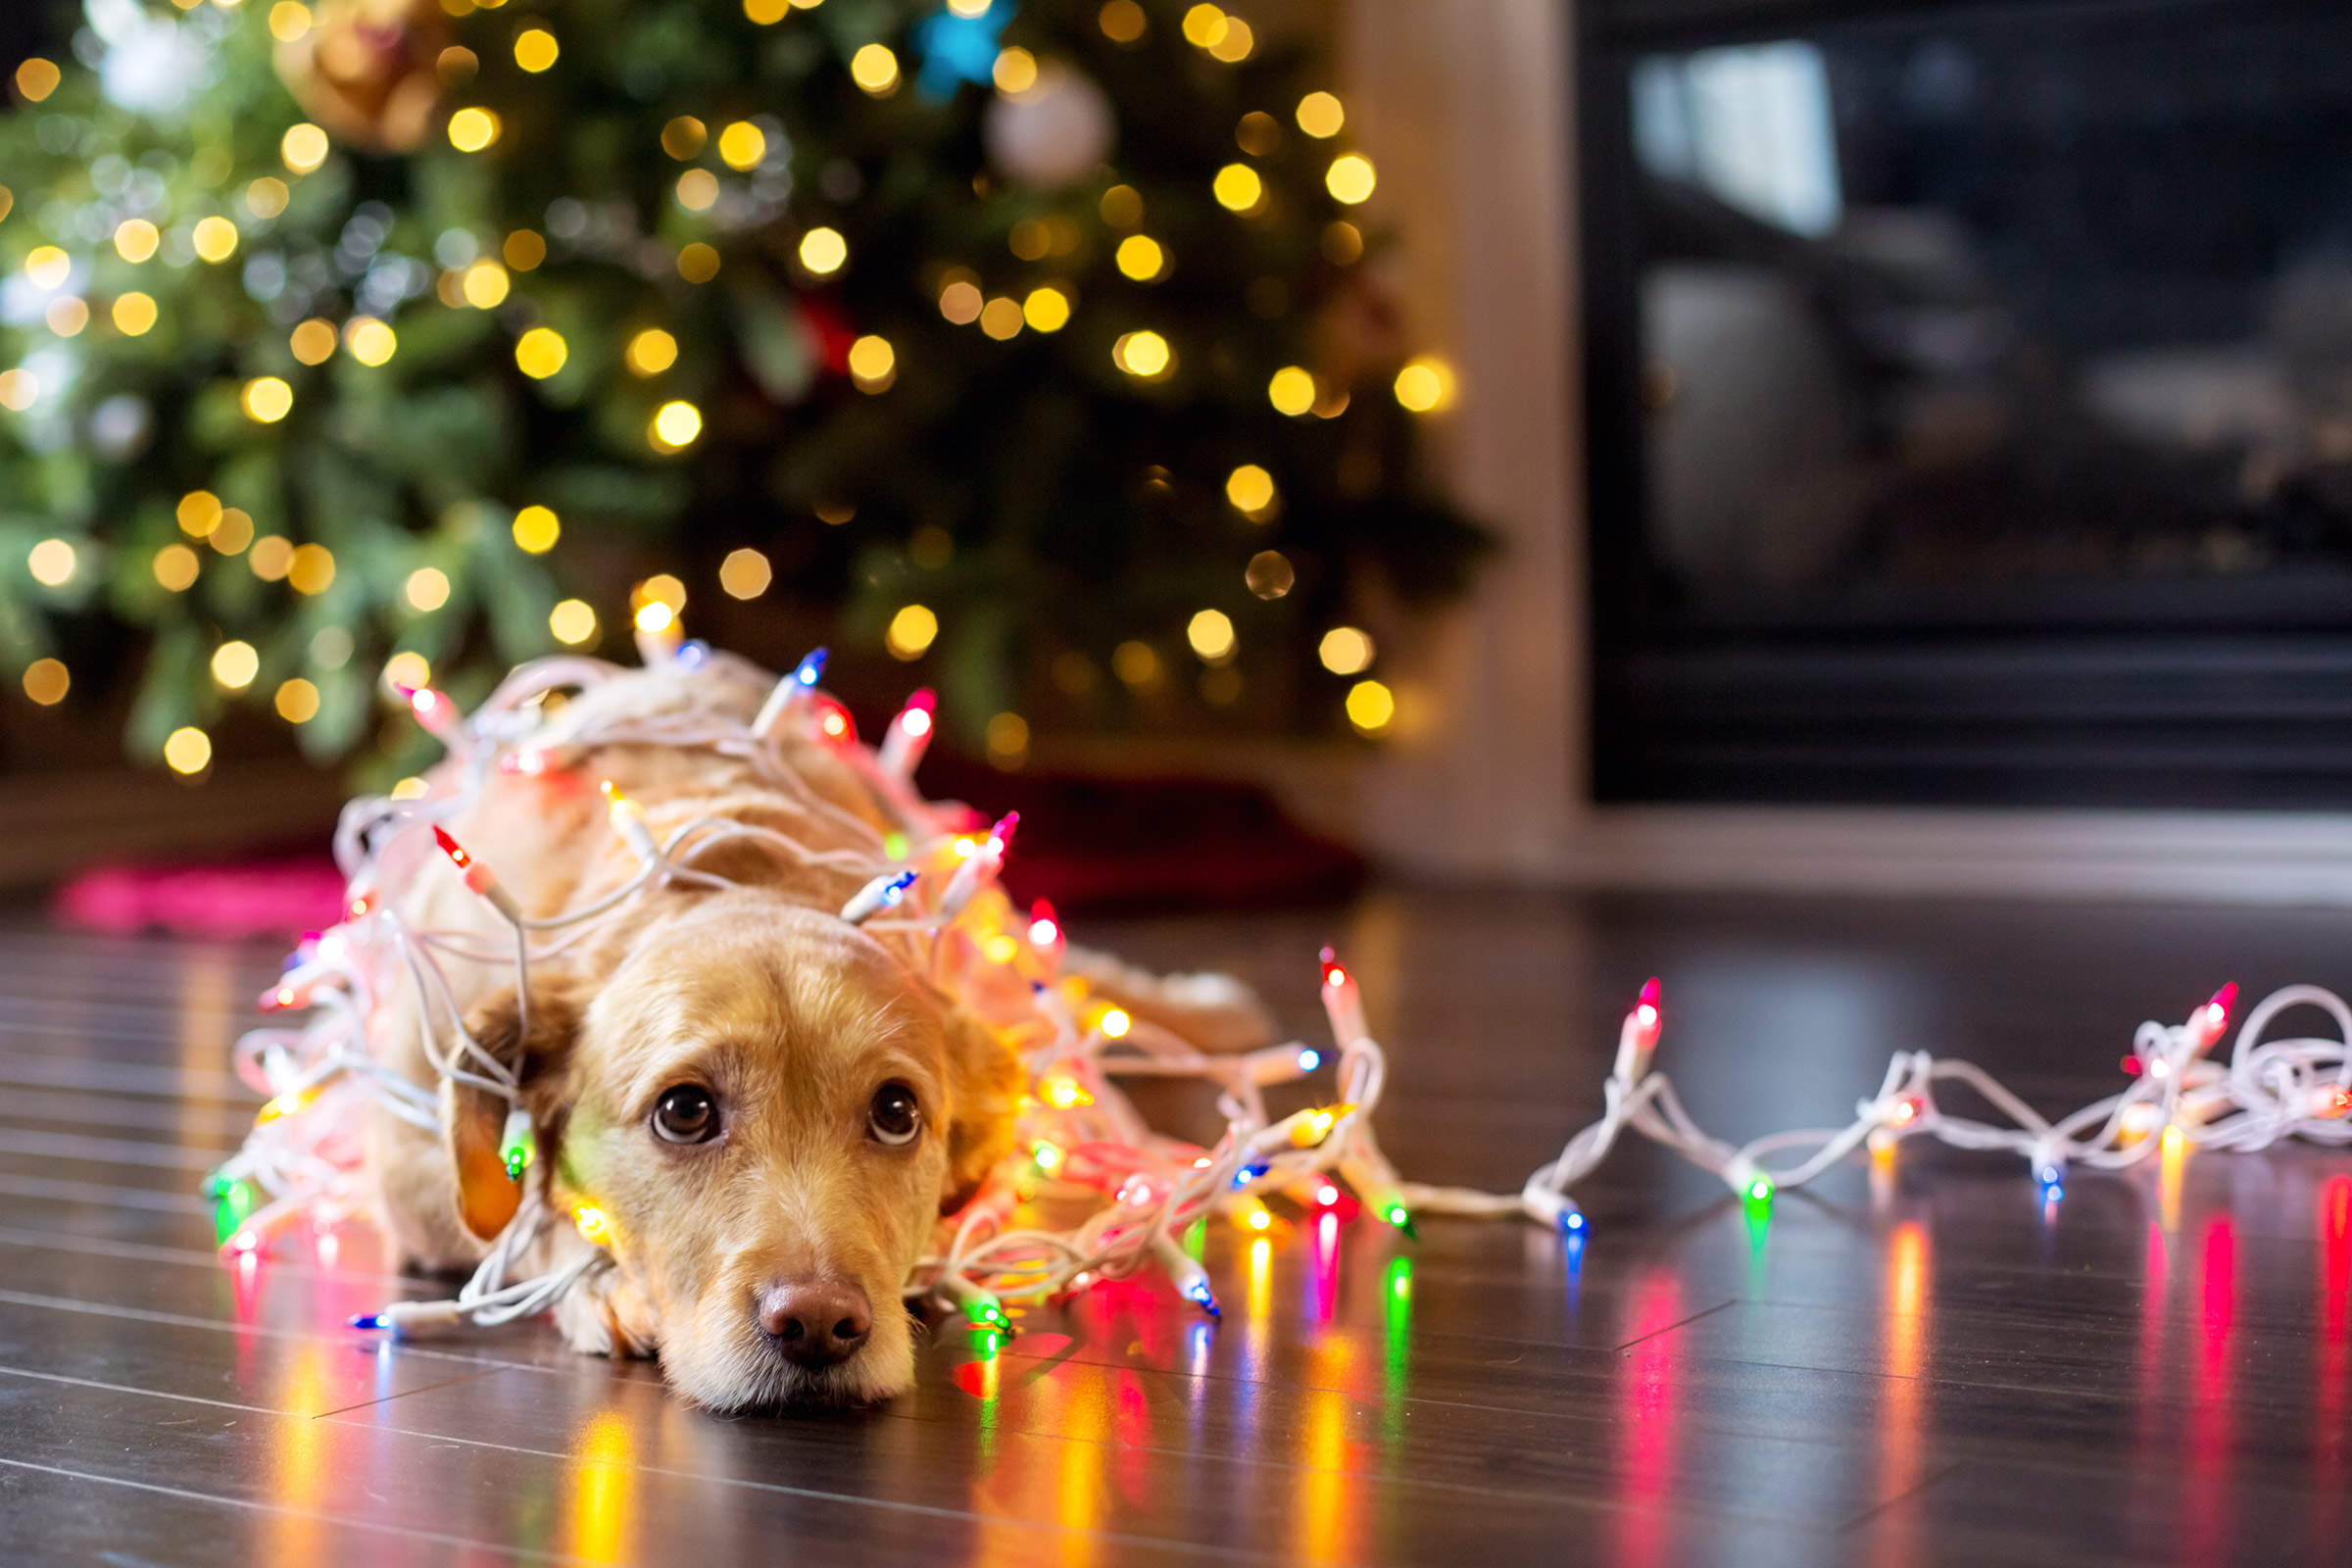 Dog on Christmas